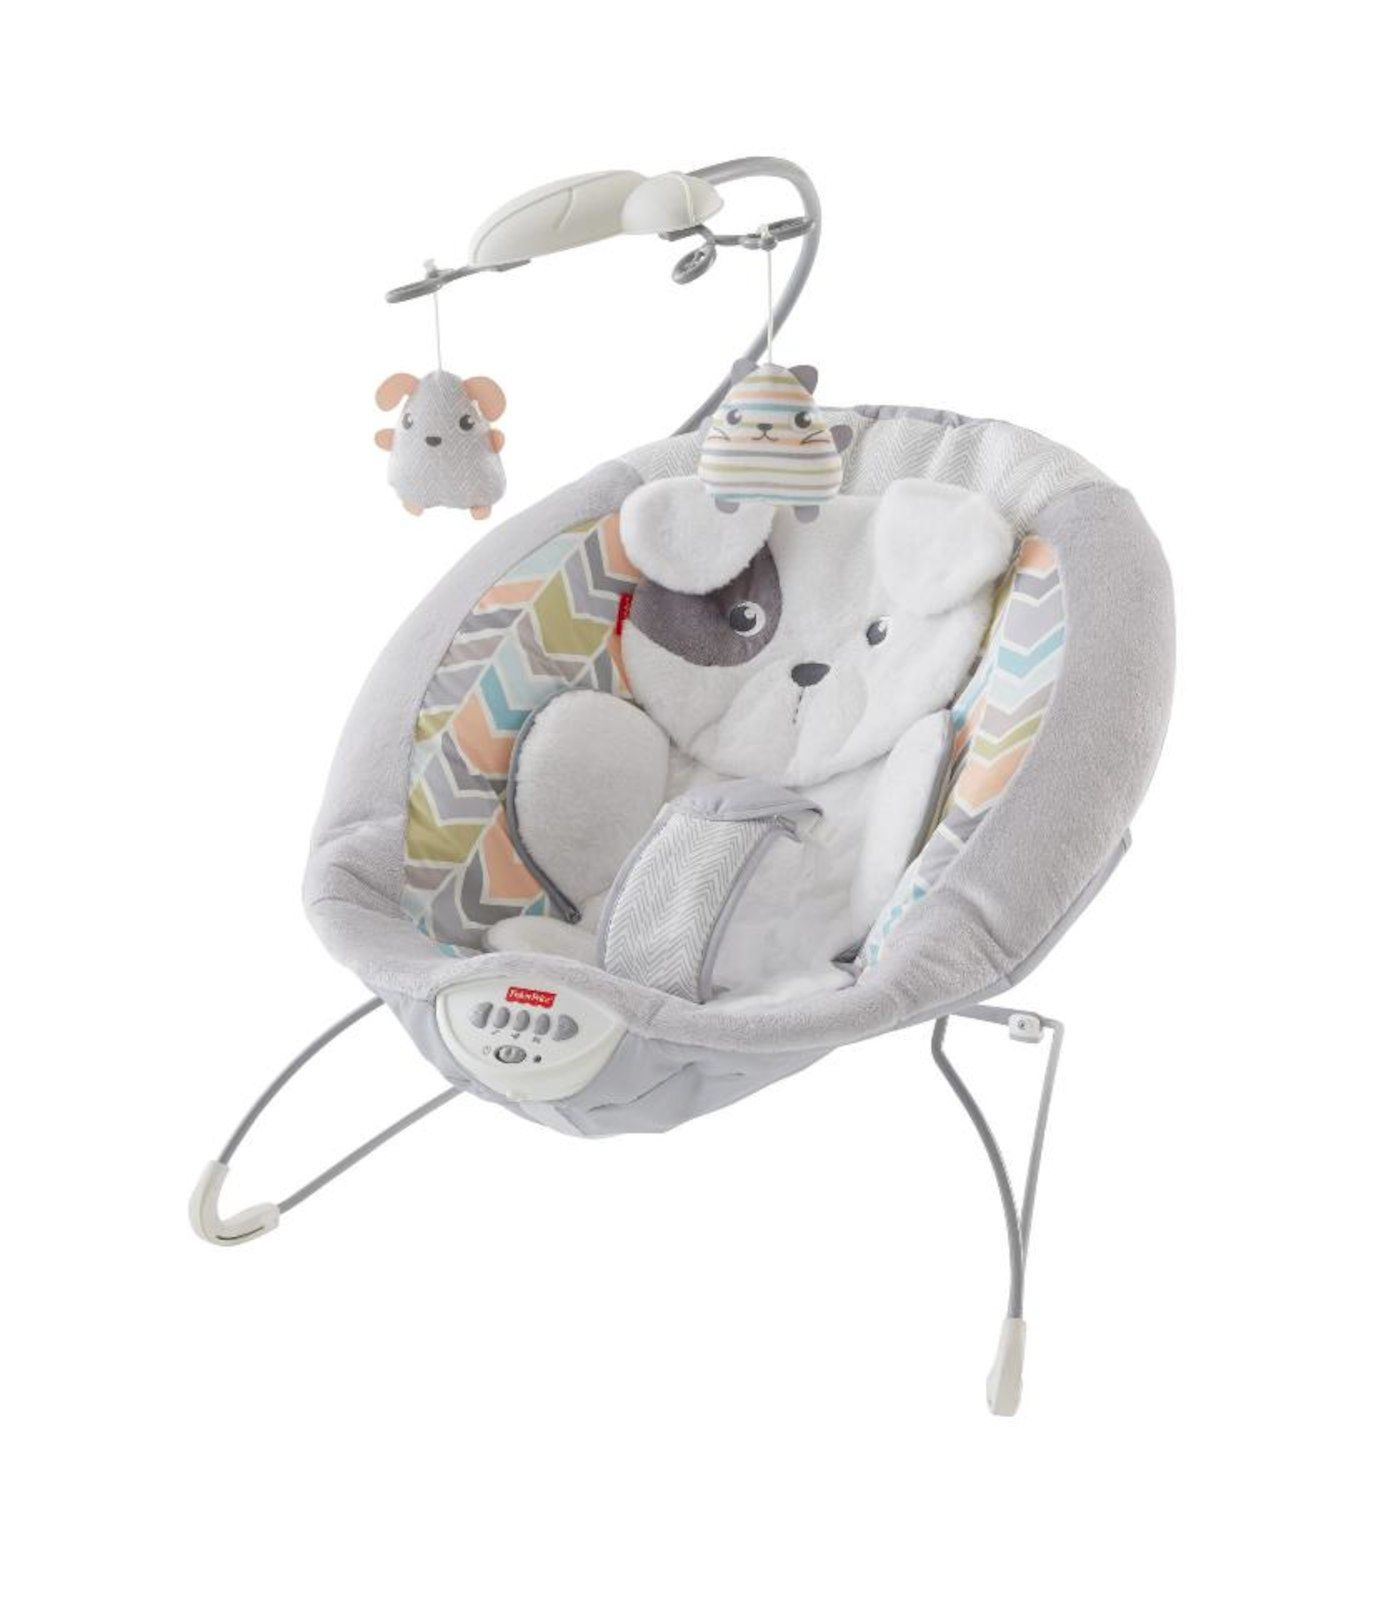 Fisher Price Sweet Snugapuppy Dreams Deluxe Baby Bouncer